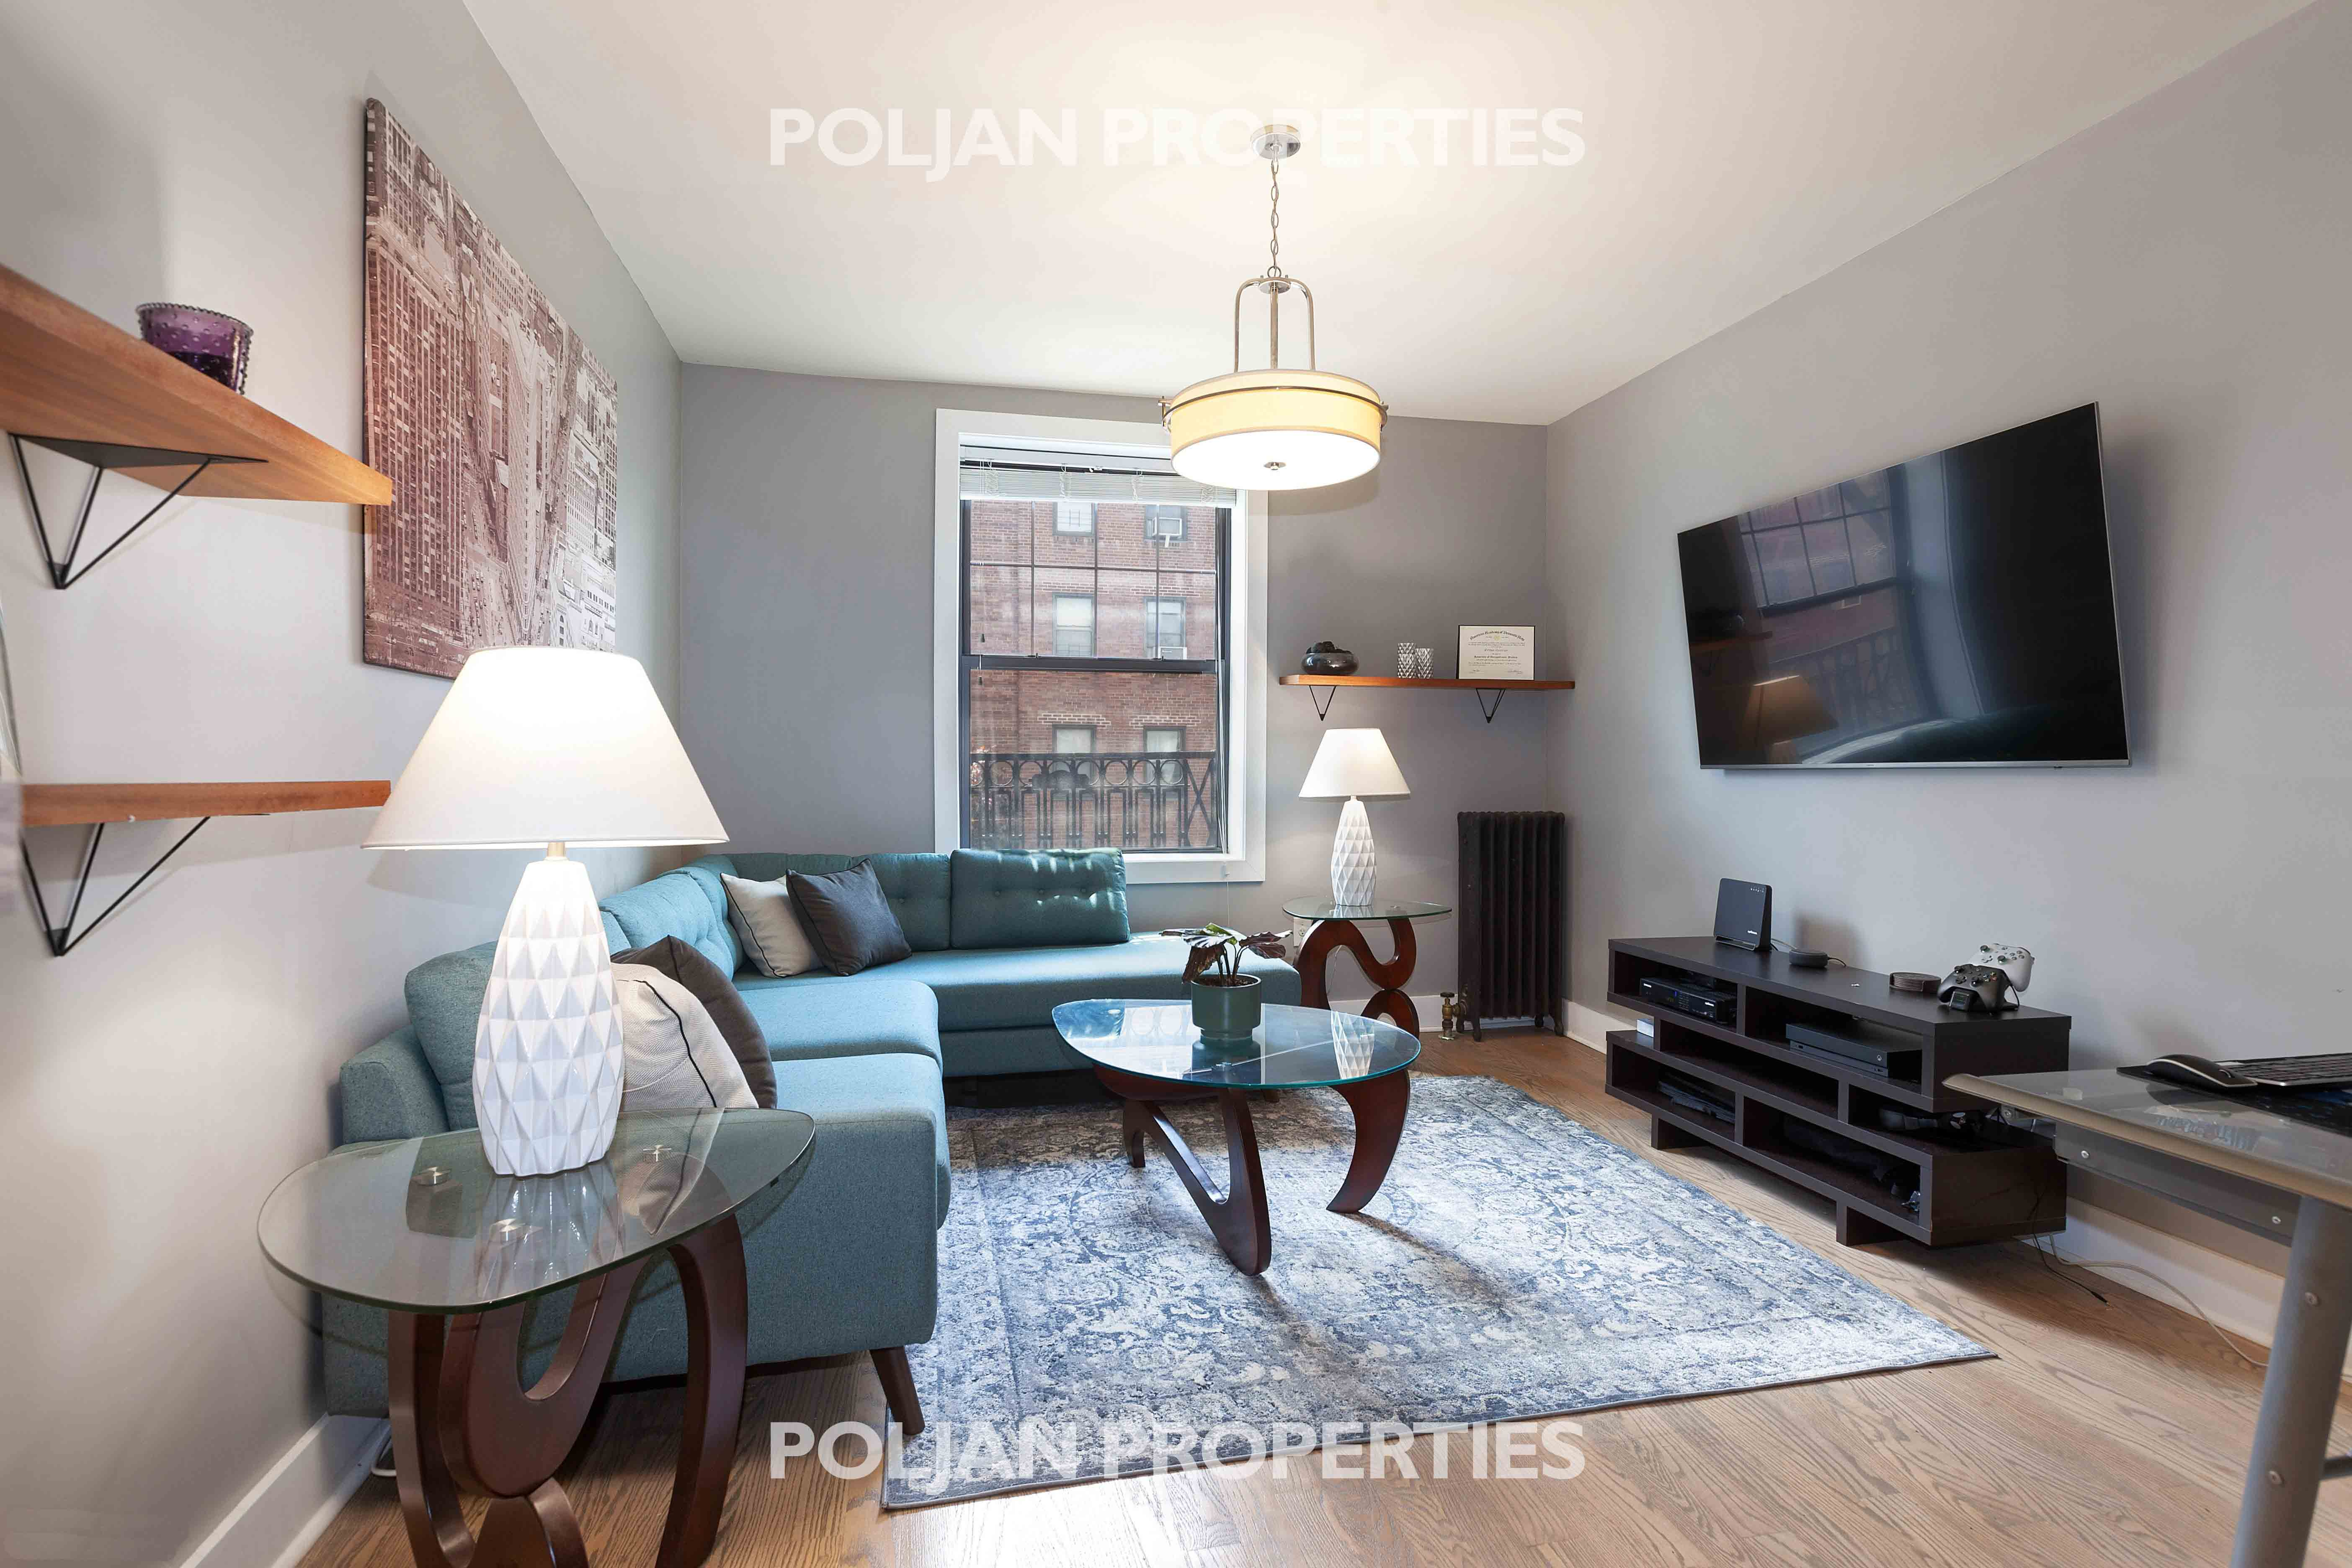 IN CONTRACT:  35 Clarkson Ave - Prospect Lefferts Gardens